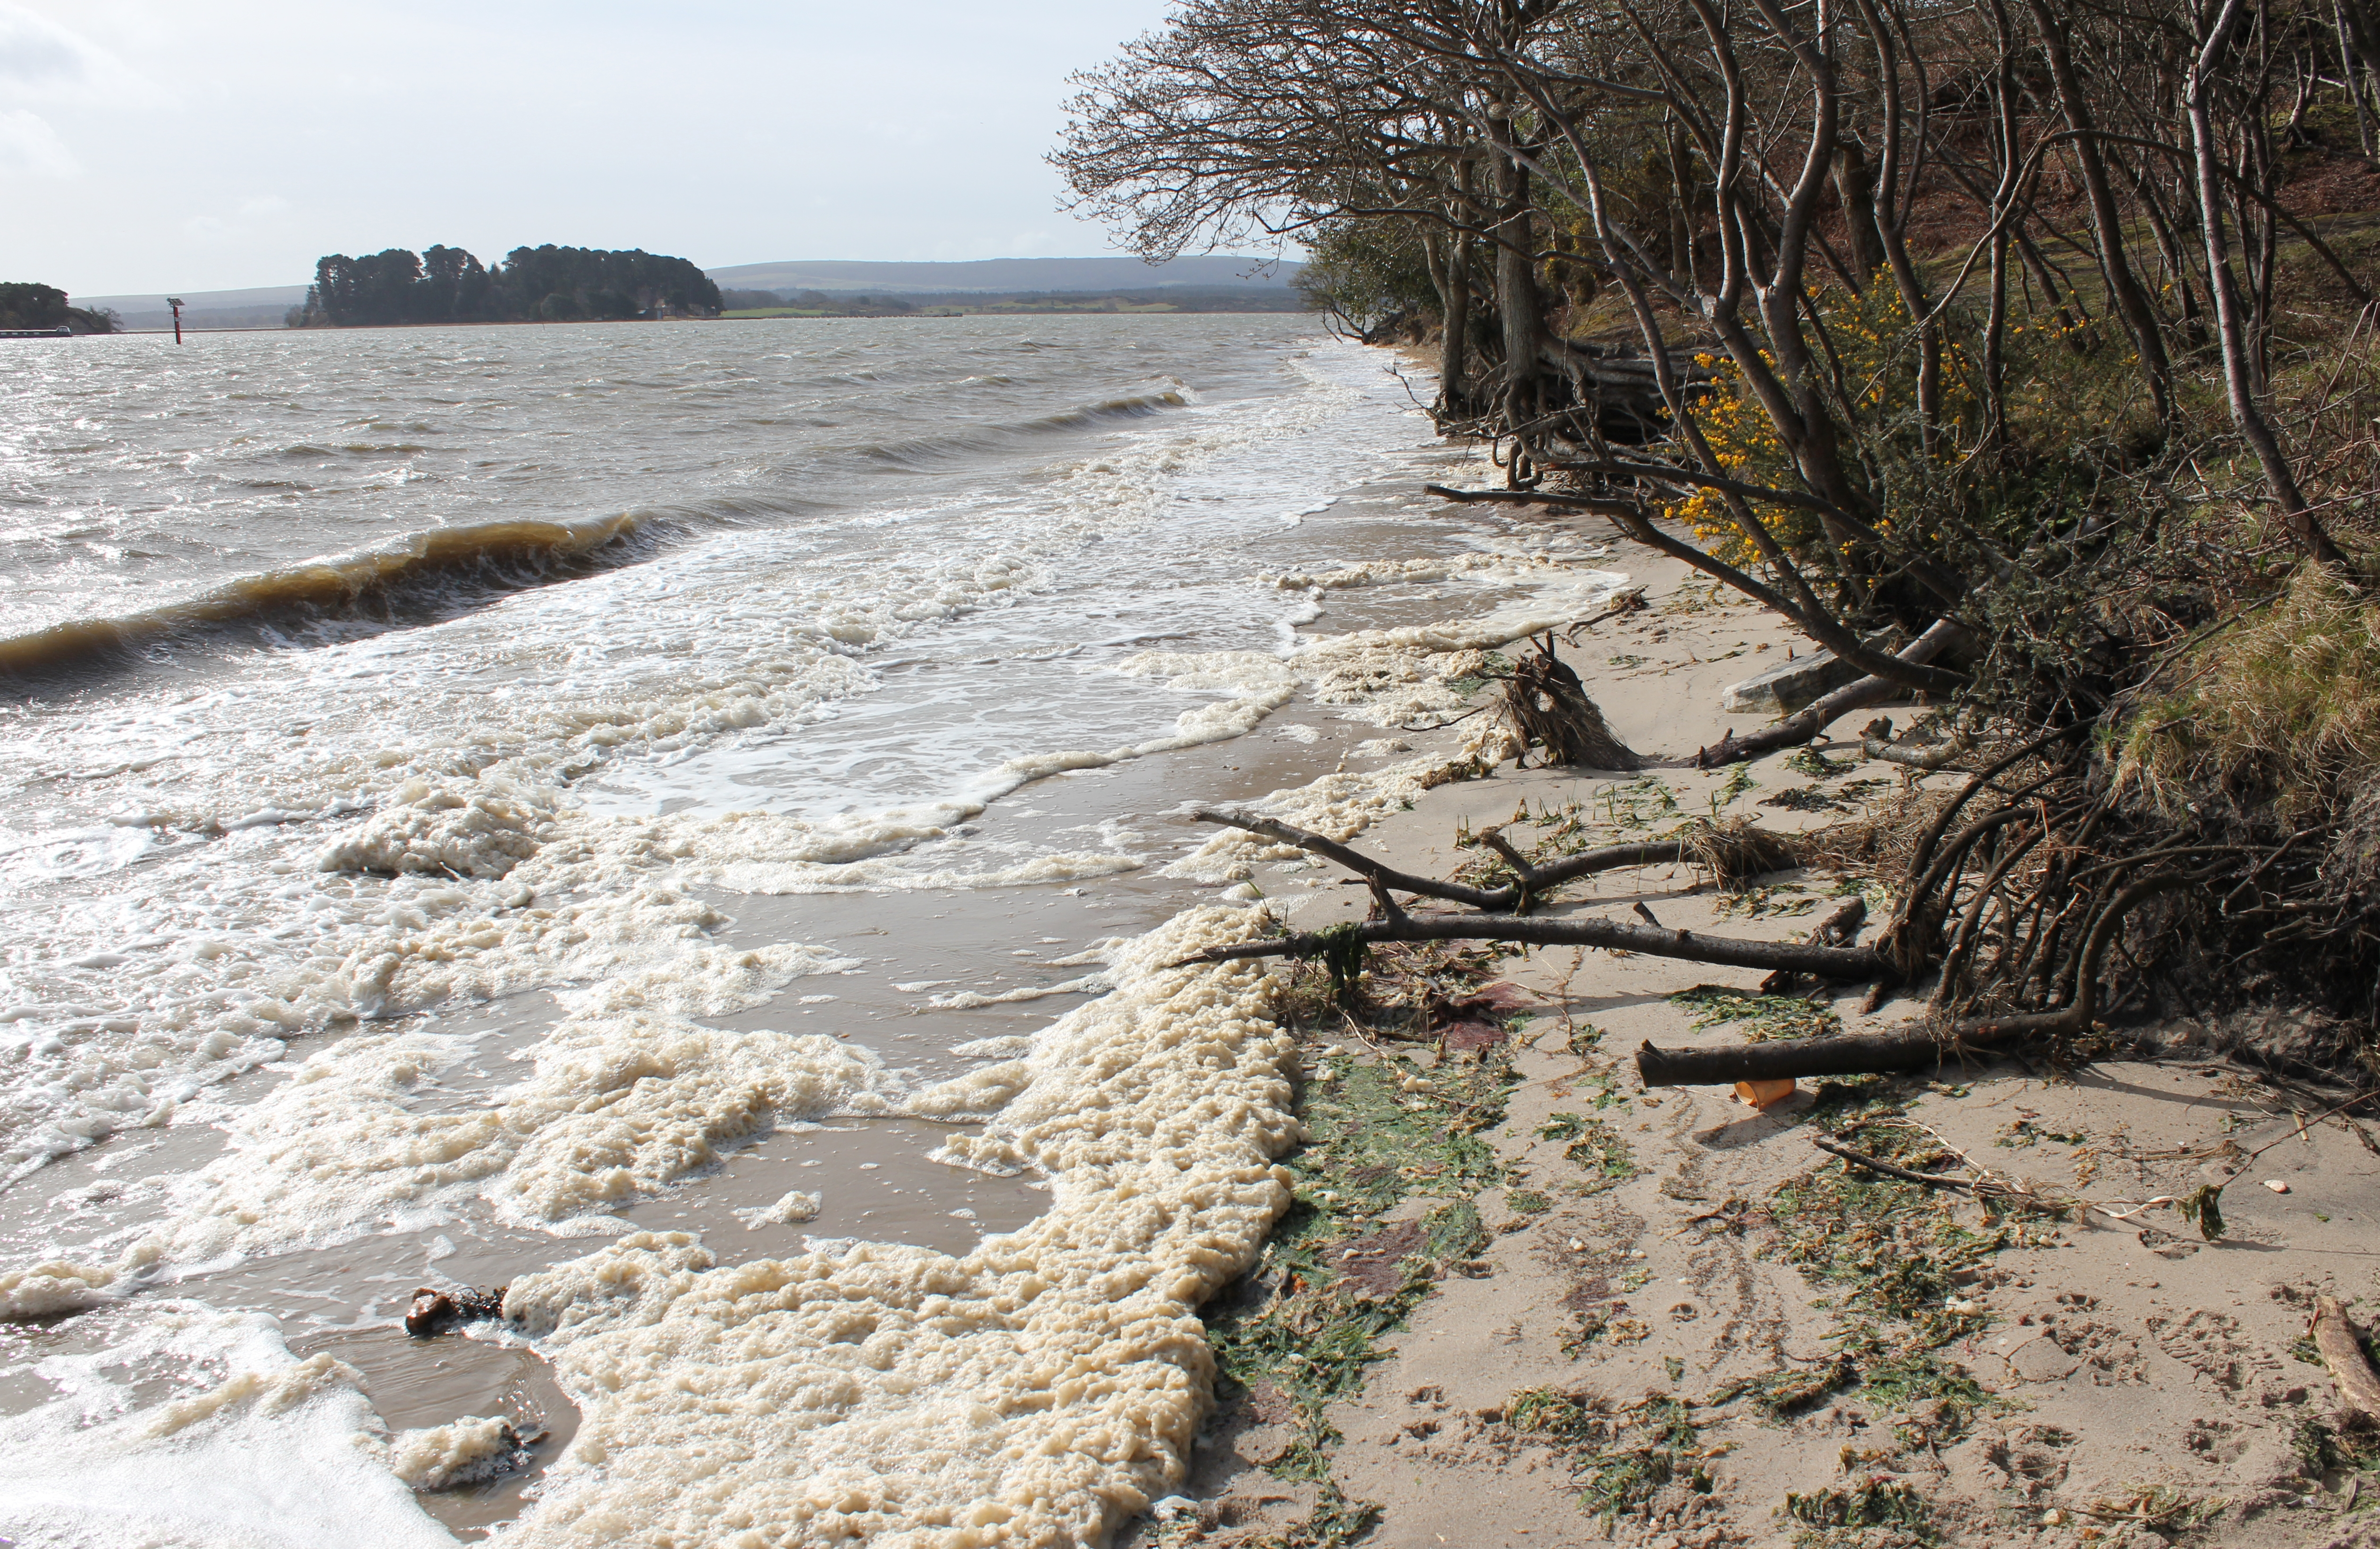 Poole Harbour's unusual tides are explained here. This is almost as high as it will get on a spring tide, with the wind as the cause of the waves. Tide prediction heights and times for Poole Harbour are available here.